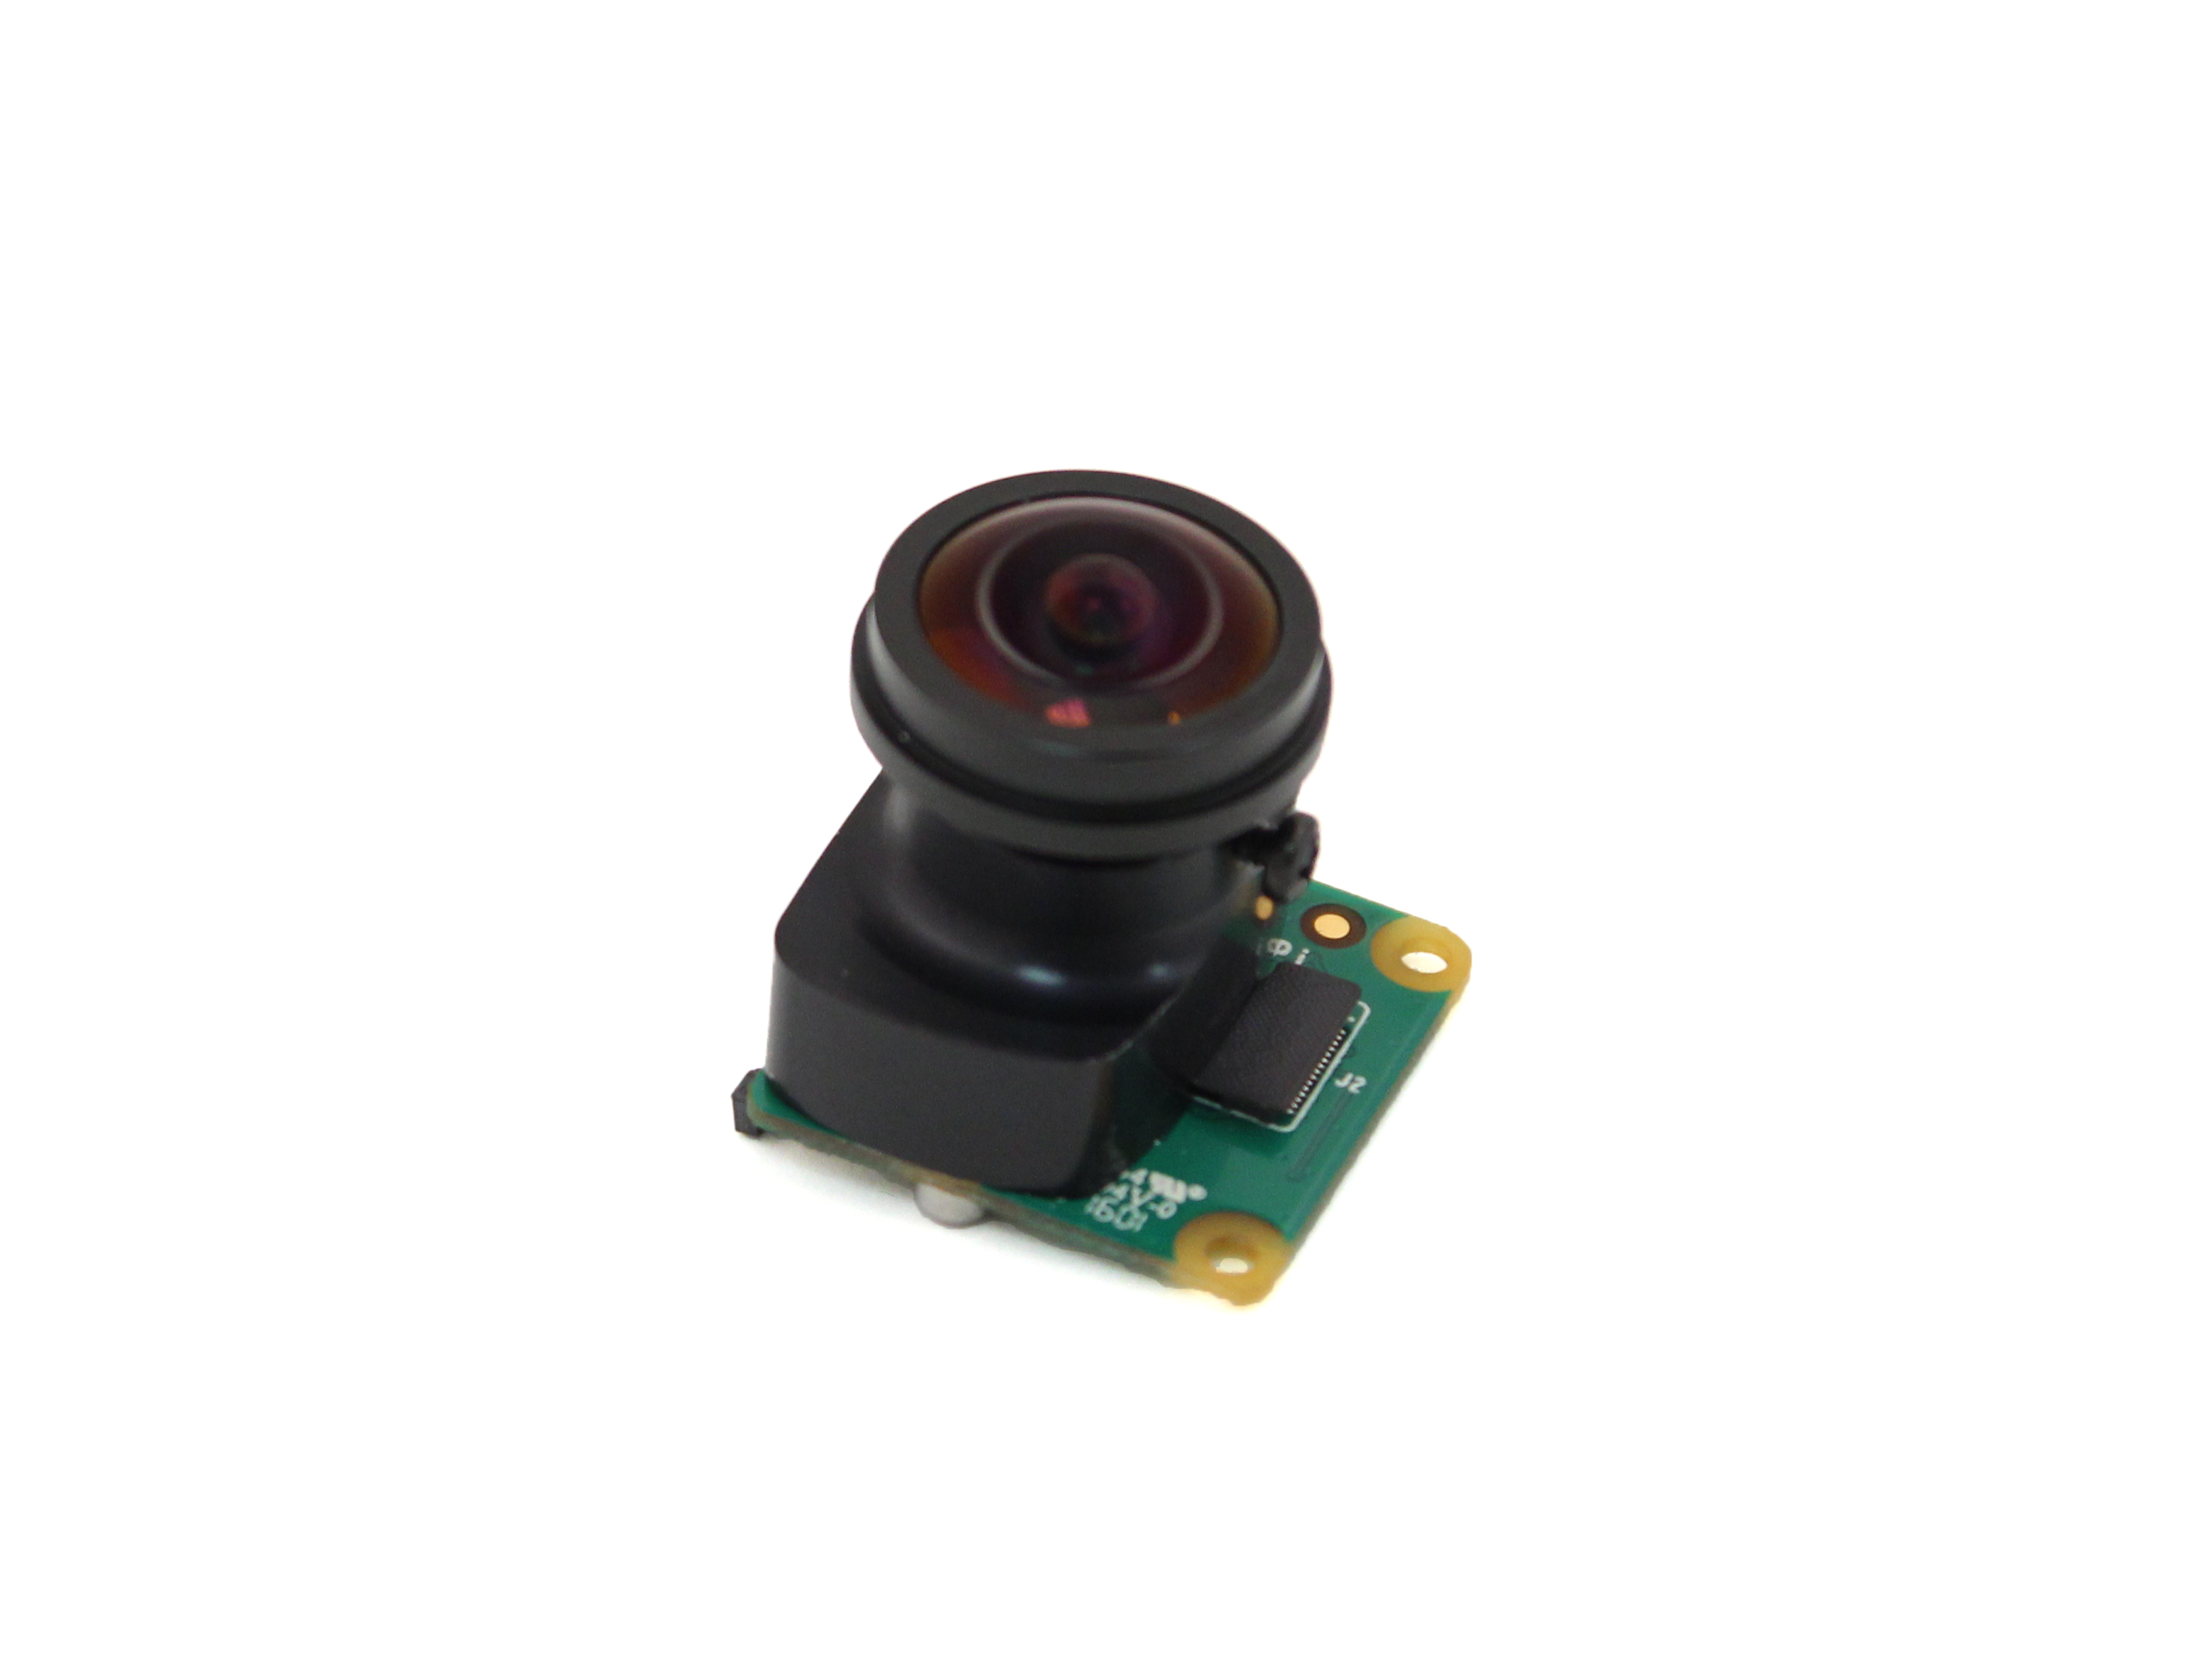 Dsc in addition D Trx Neutral Indicator Sensor Neutral Switch as well Dsc likewise Img together with . on temperature sensor switch